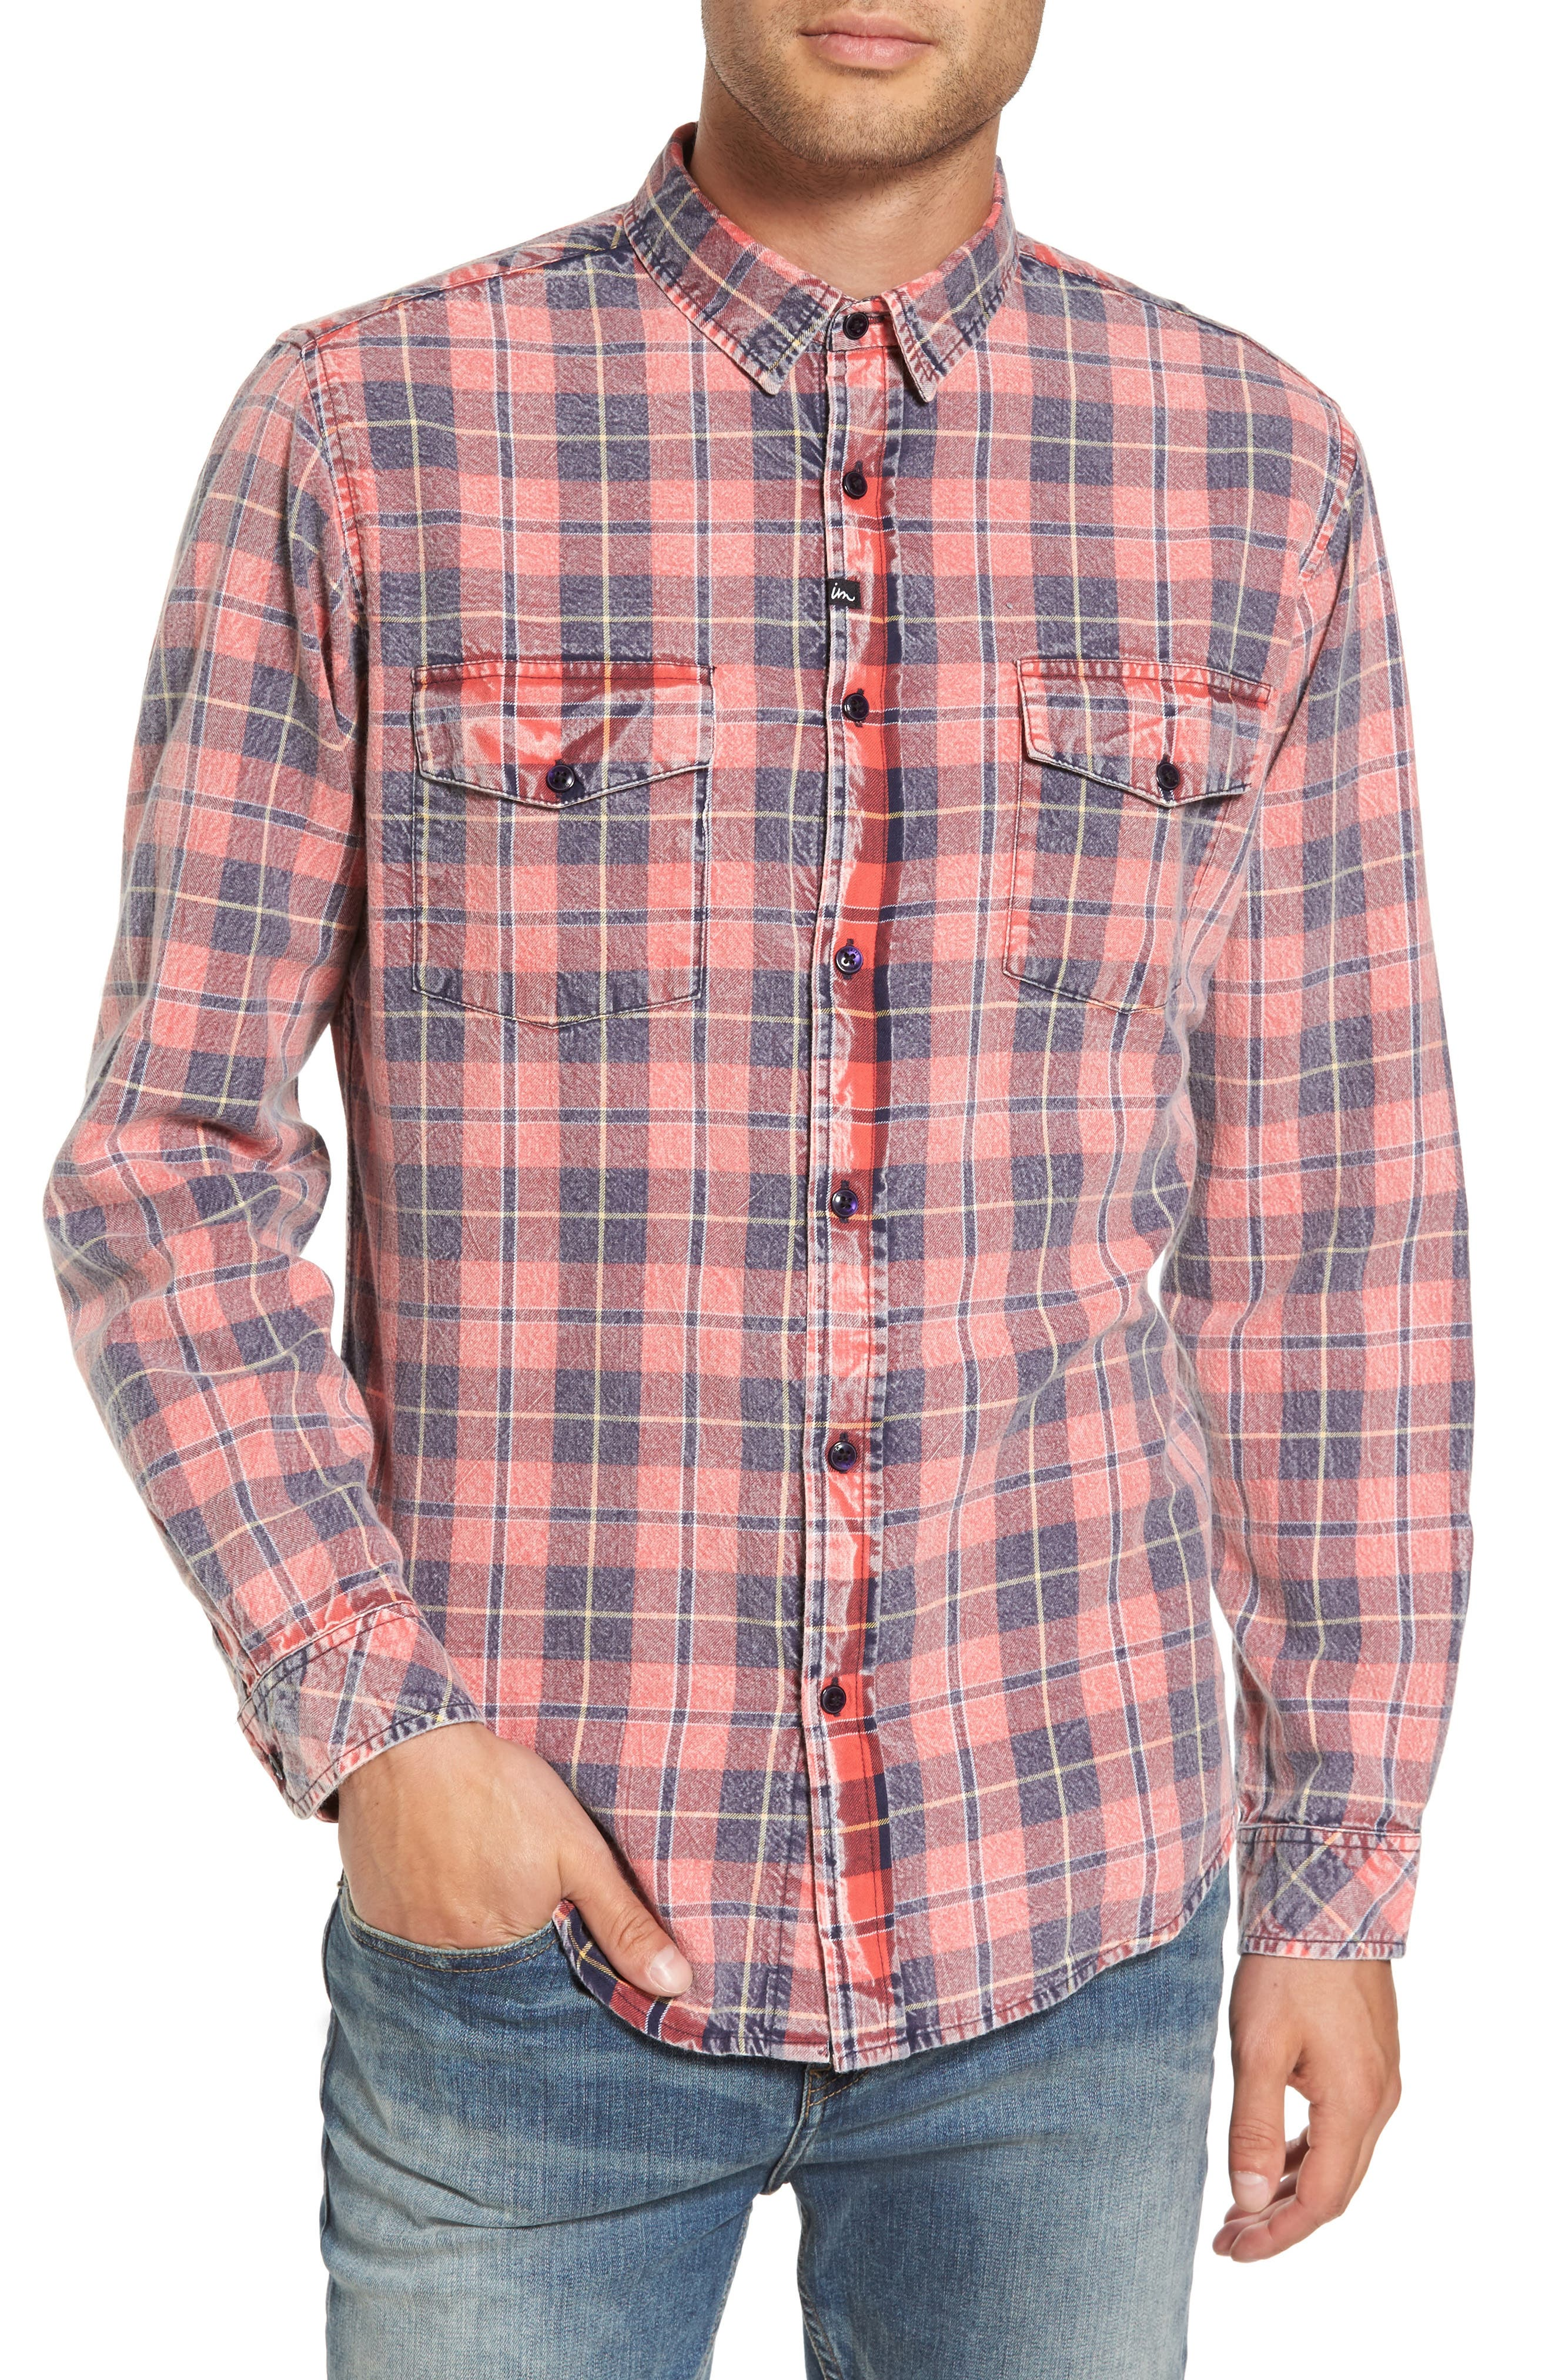 Greenwich Flannel Shirt,                             Main thumbnail 1, color,                             600